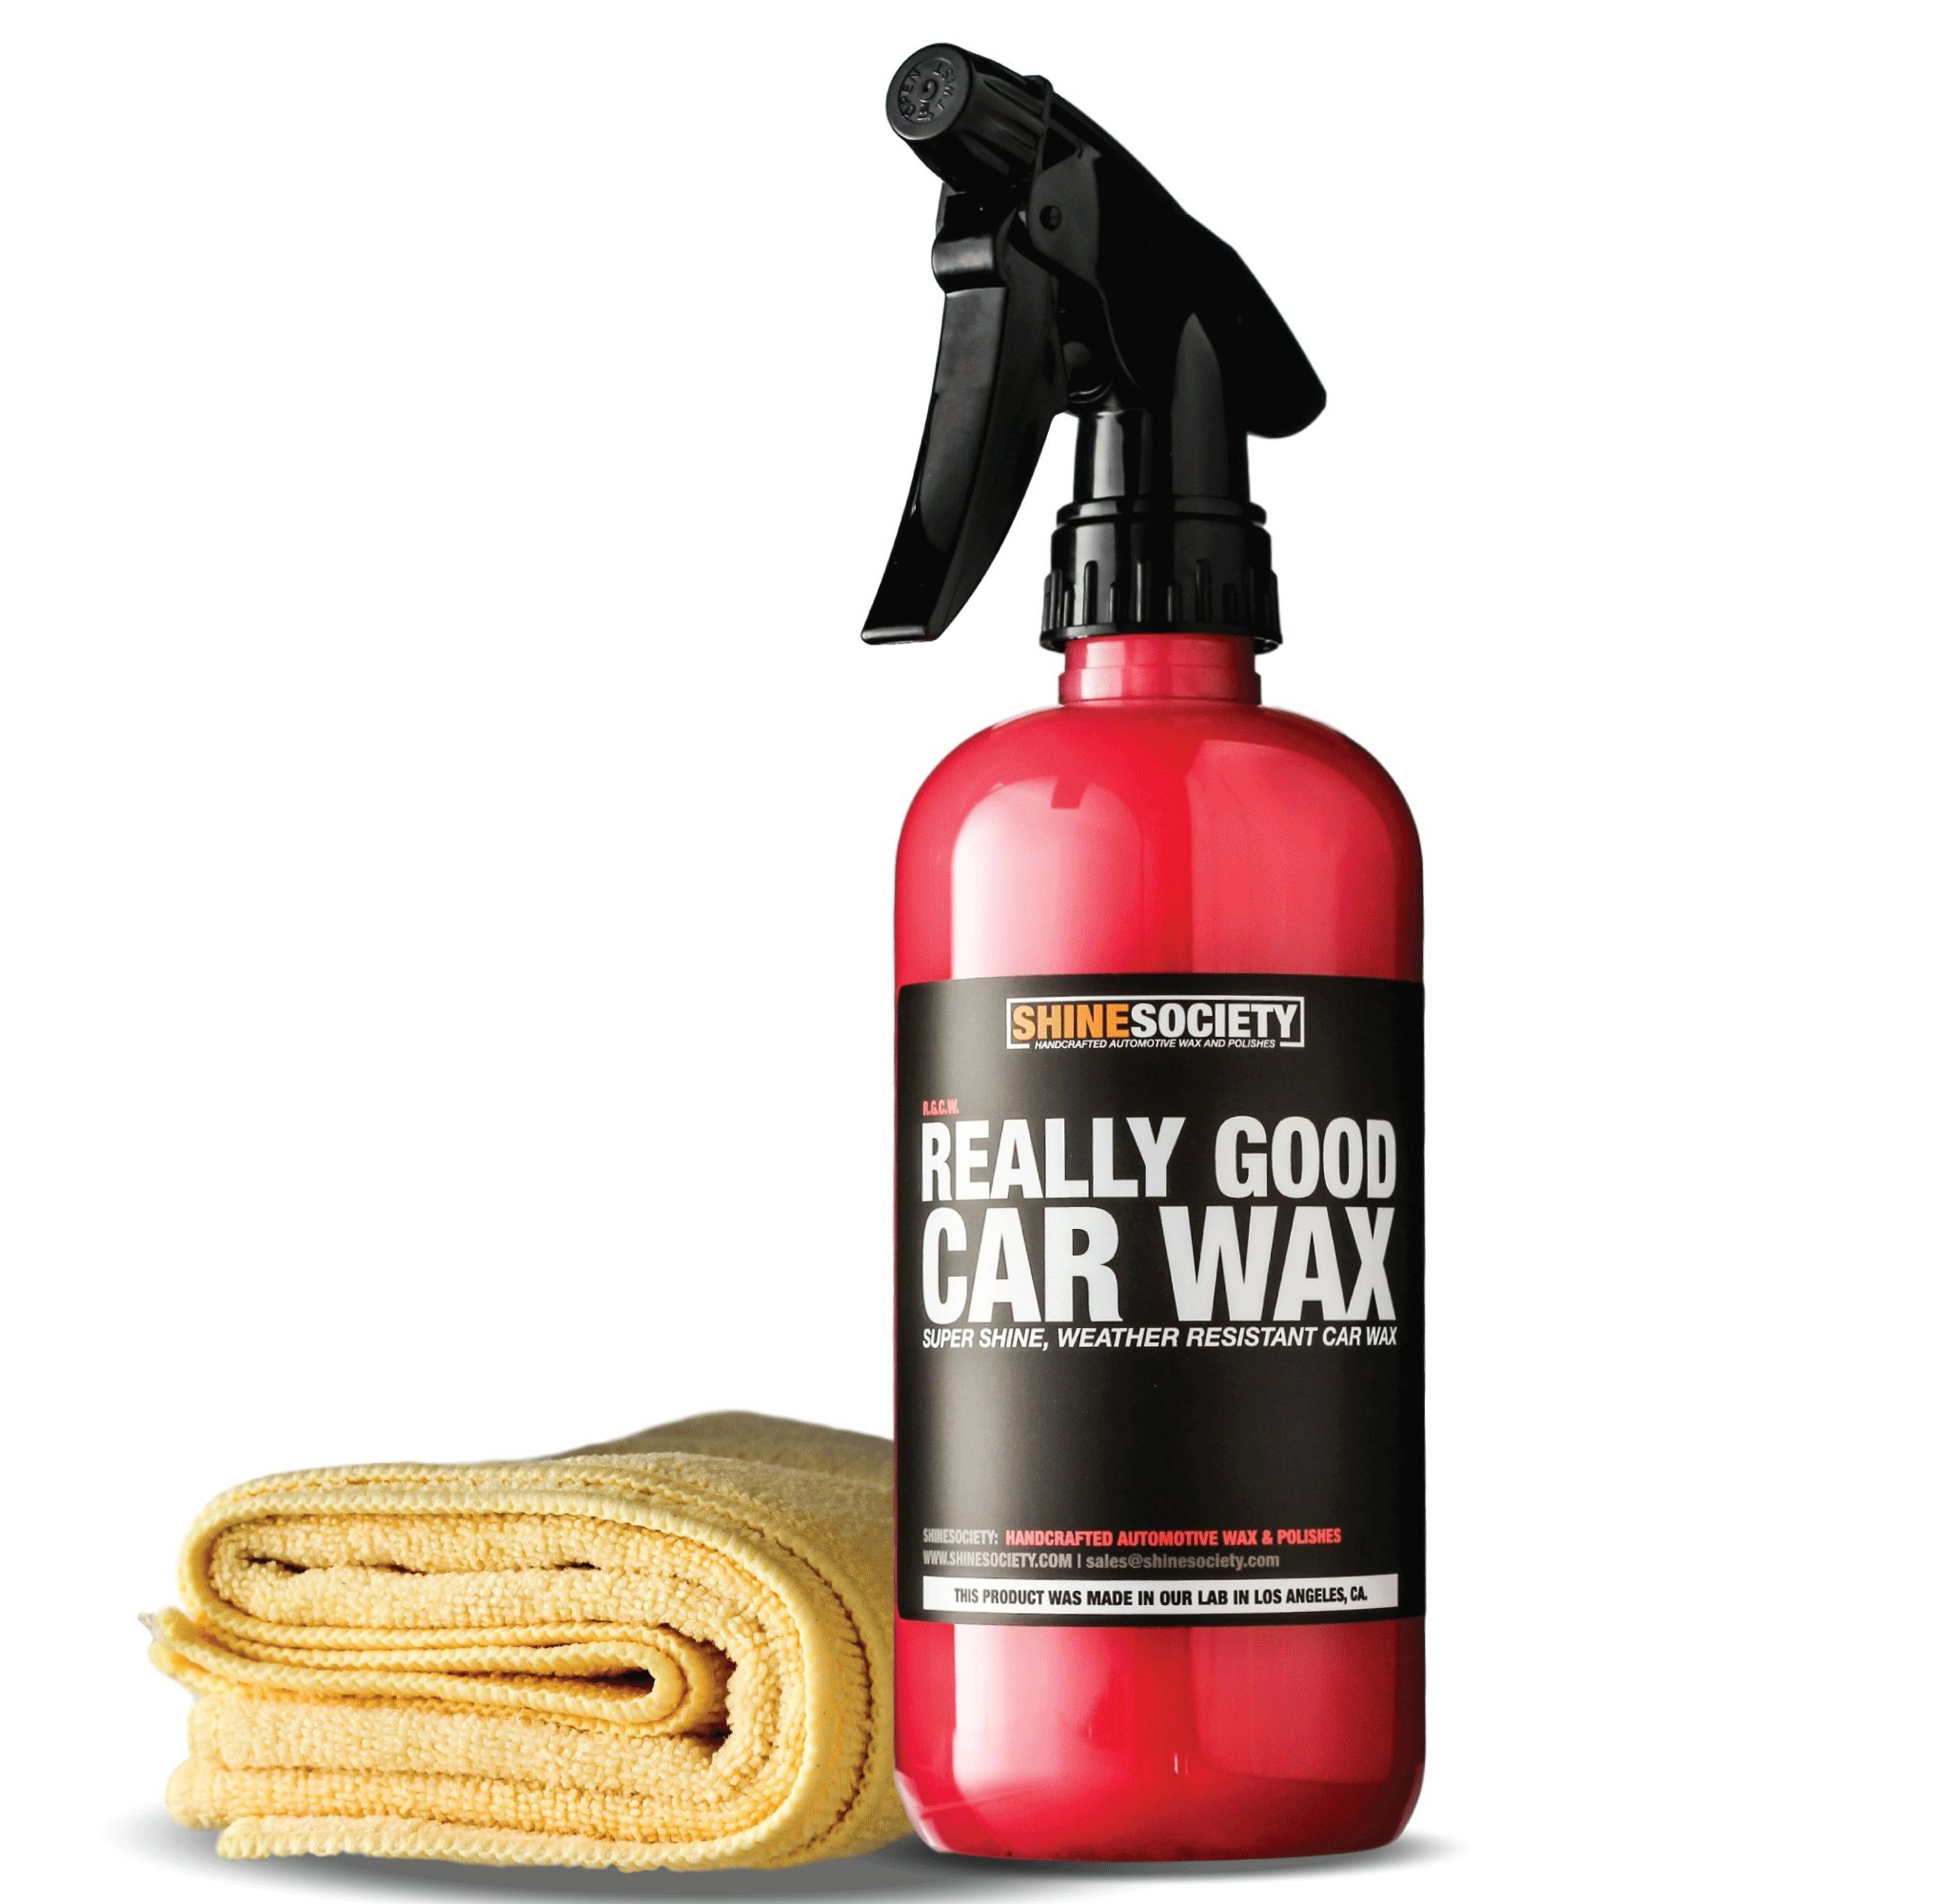 Shine Society Really Good Car Wax, Adds a Super Shine Finish and Weather Resistant Barrier To Paint and Vinyl, with MICROFIBER TOWEL INCLUDED (18 oz.)